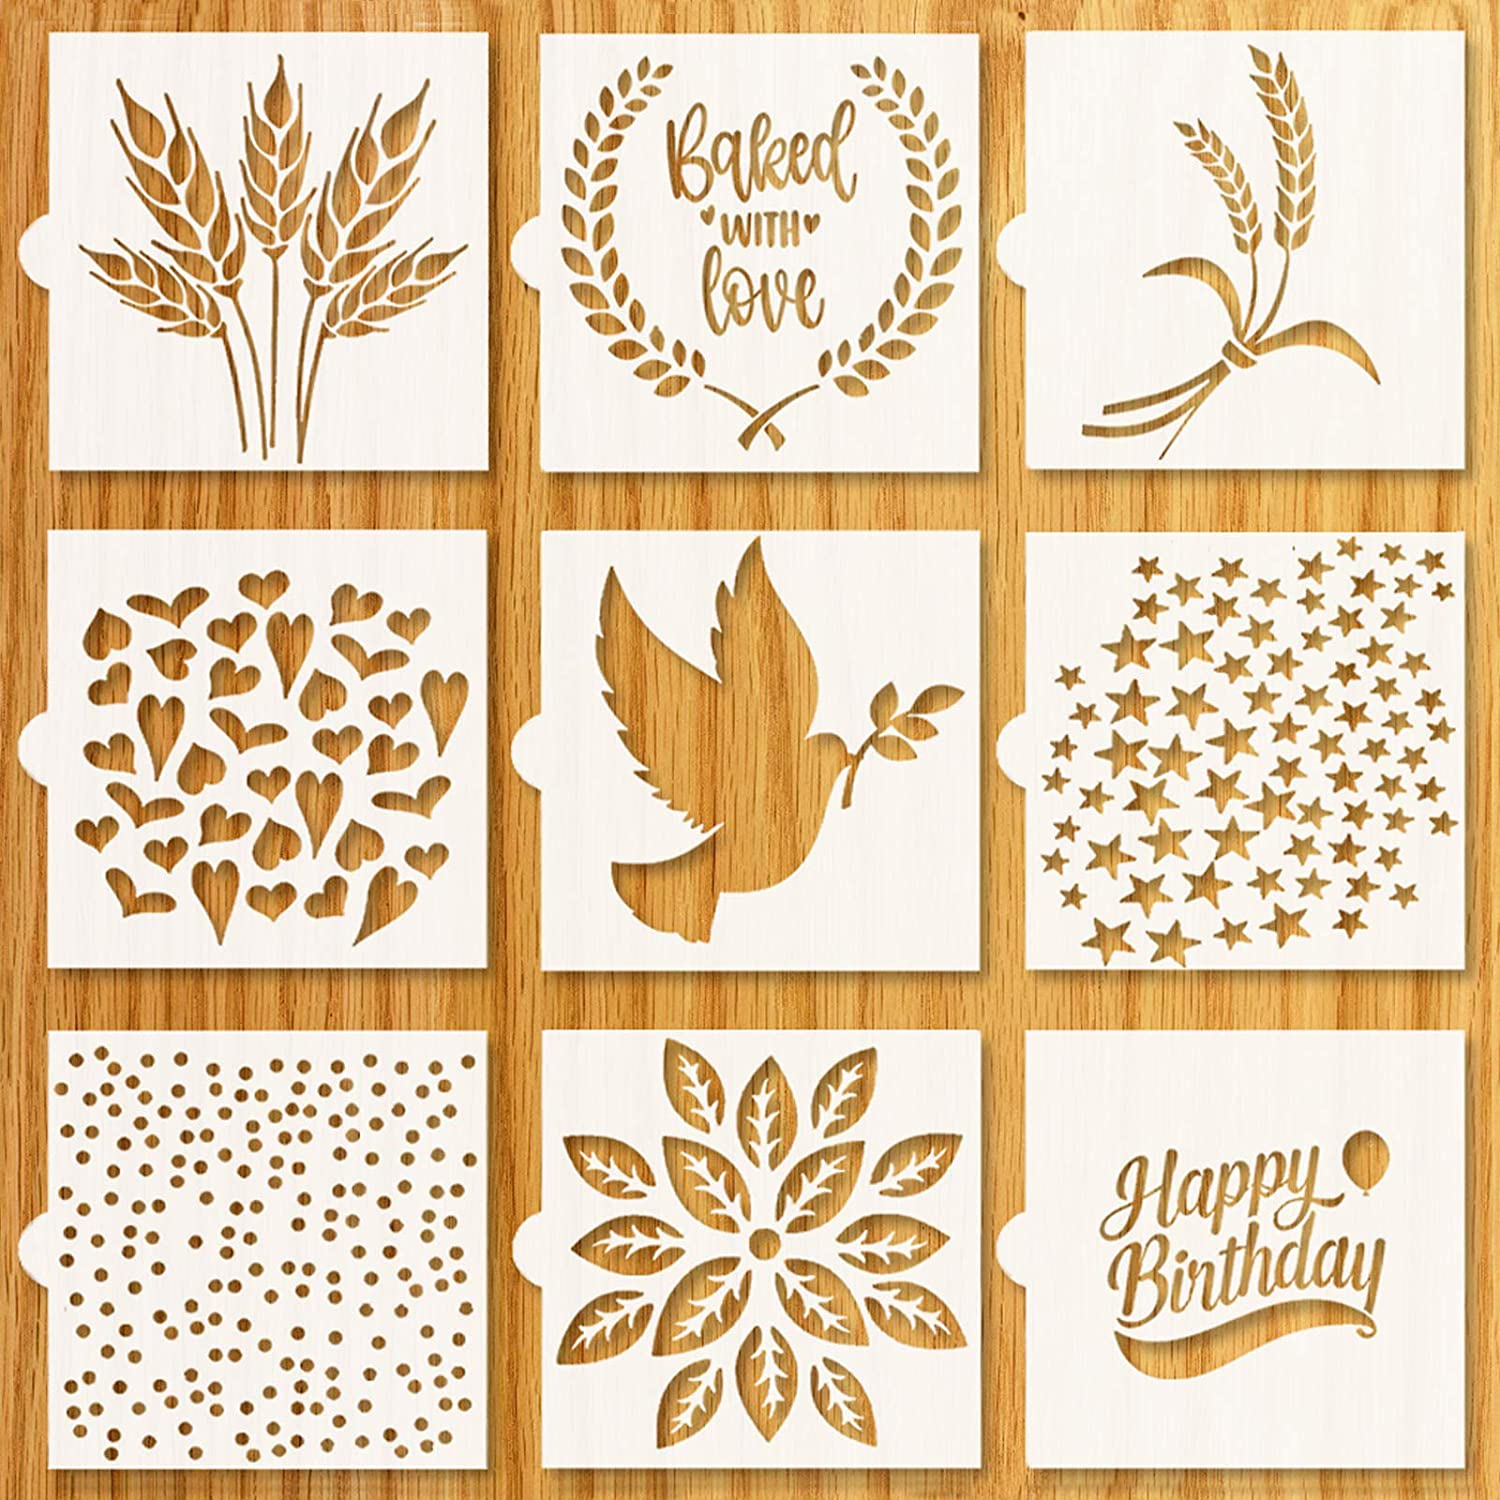 "Artisan Bread Stencils | Bread, Cake, Pie, or Cookie Stencils (Set of 9) for Decorating Your Own Unique Design | Baking Stencil Set (5.5"" by 5.5"") Includes Classic Wheat, Stars, Hearts & More"